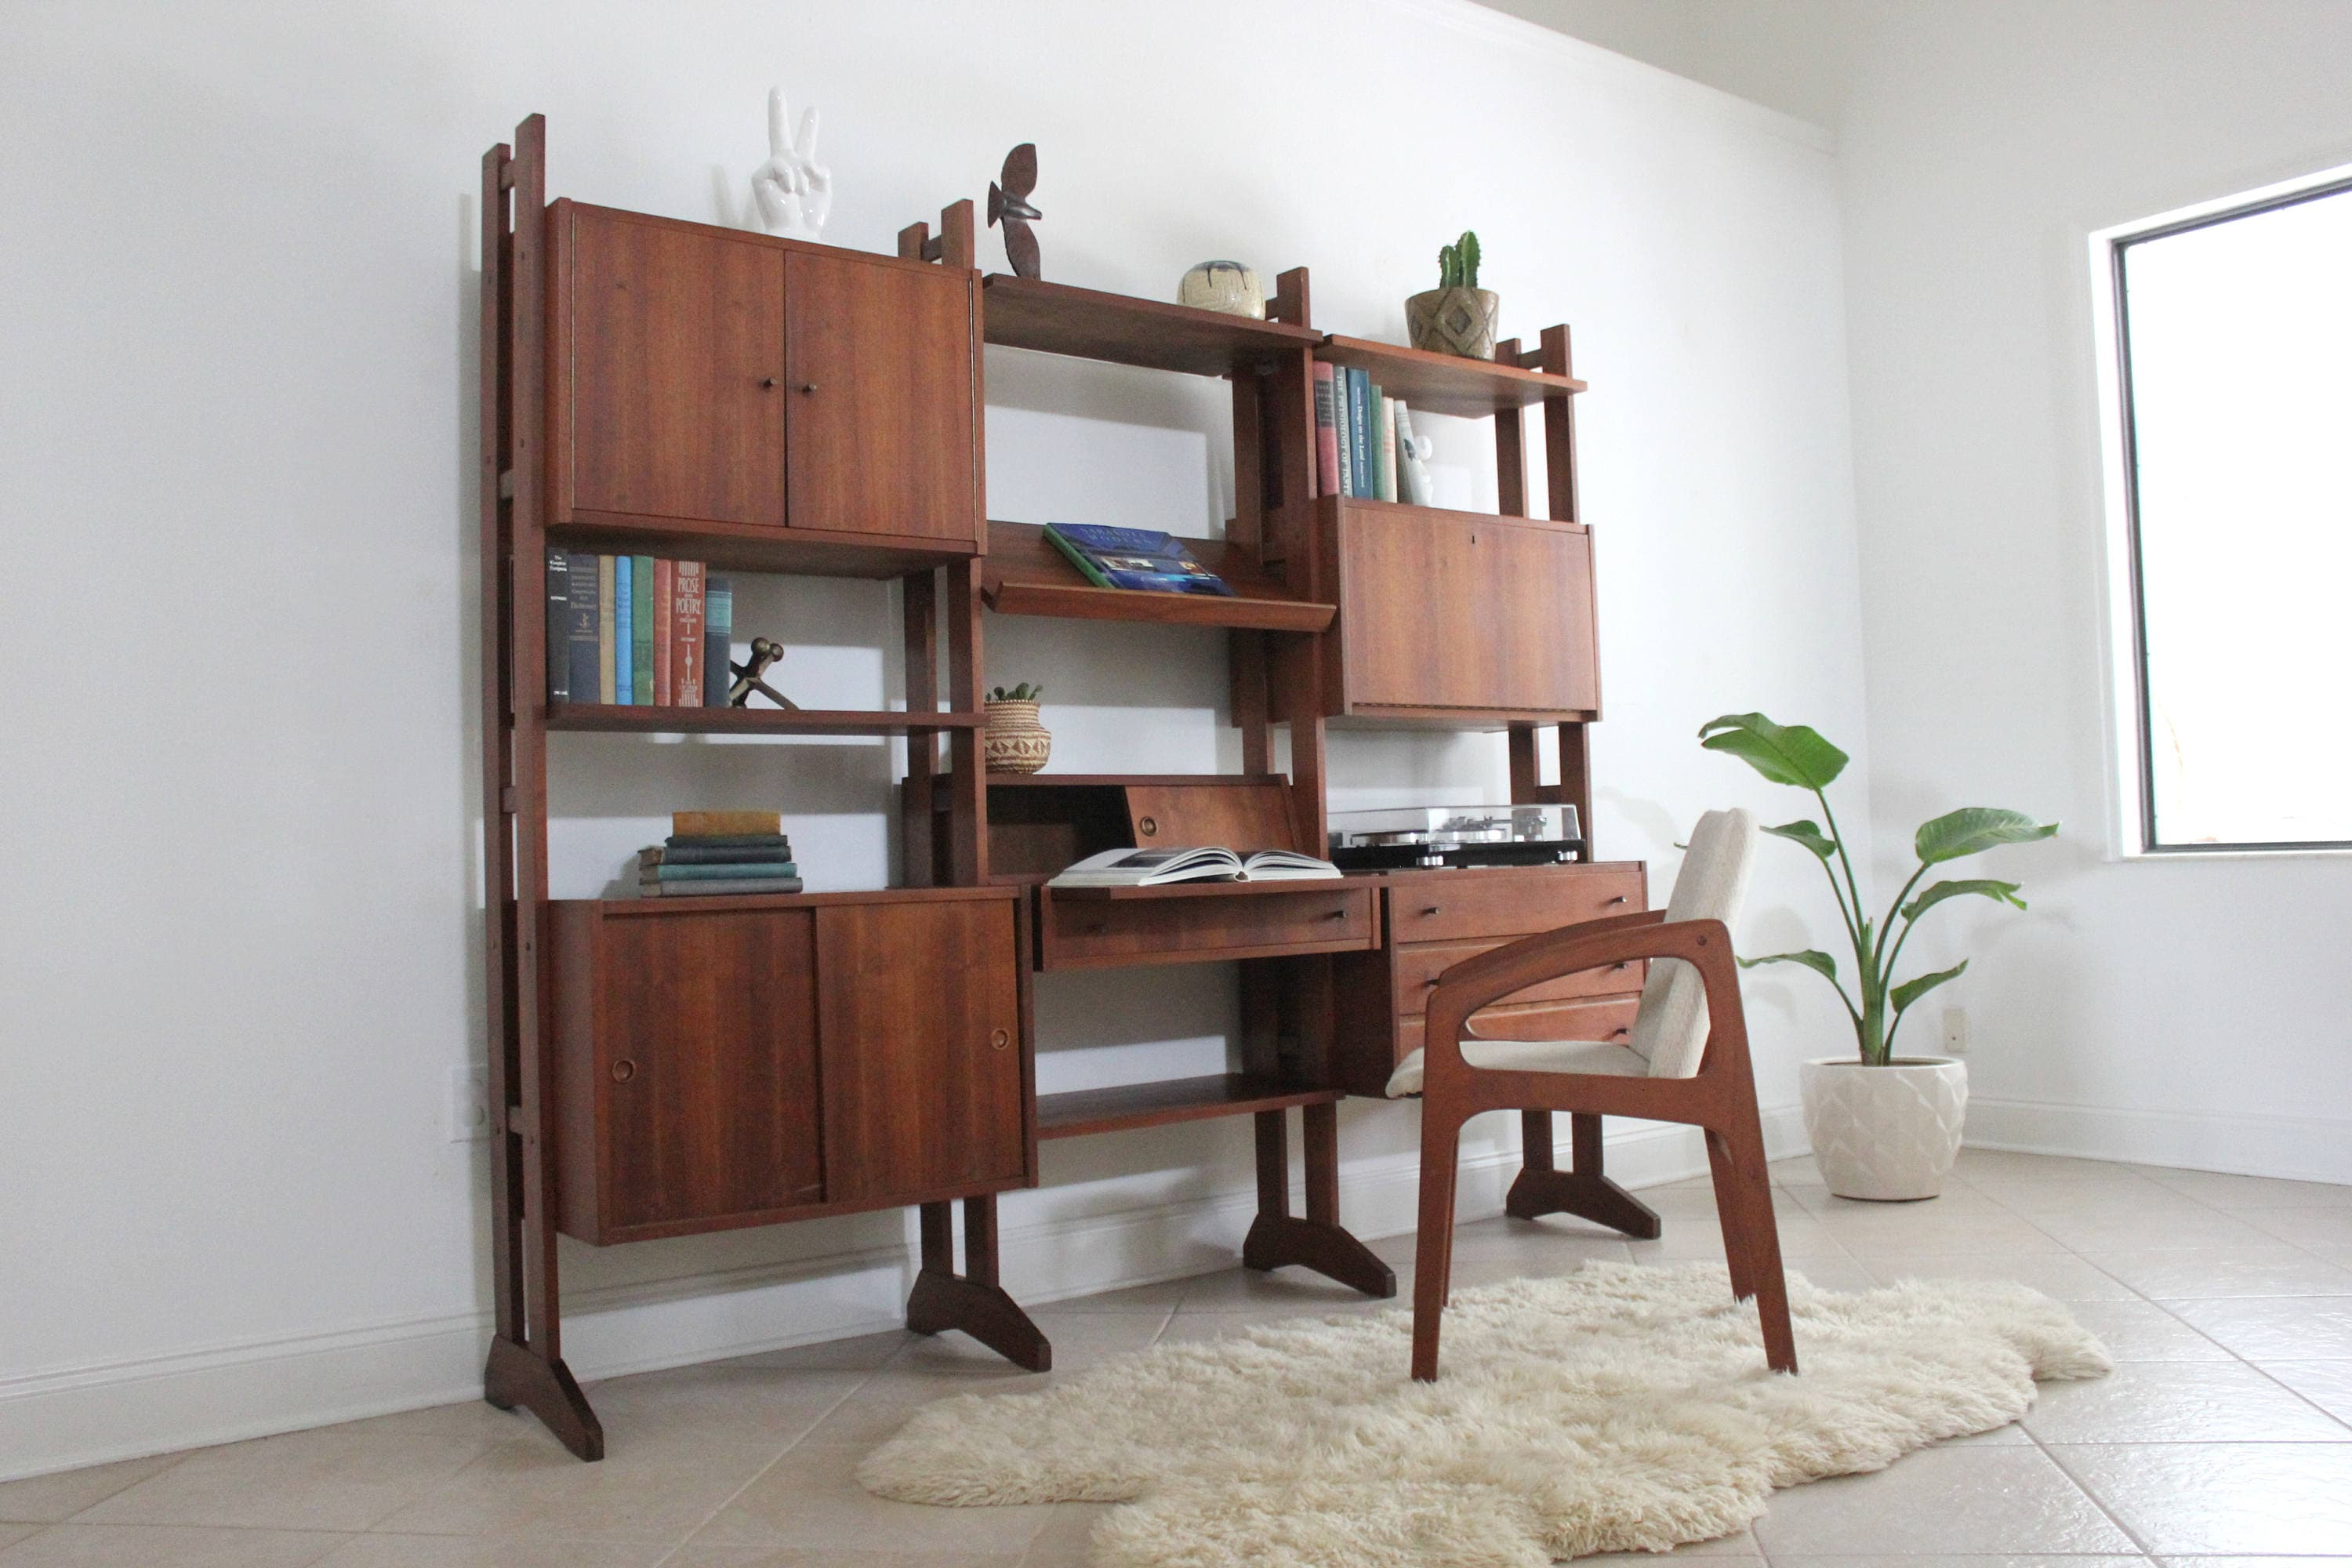 Image of: Sold Do Not Purchase Mid Century Modern Freestanding Wall Unit Shelving System Room Divider